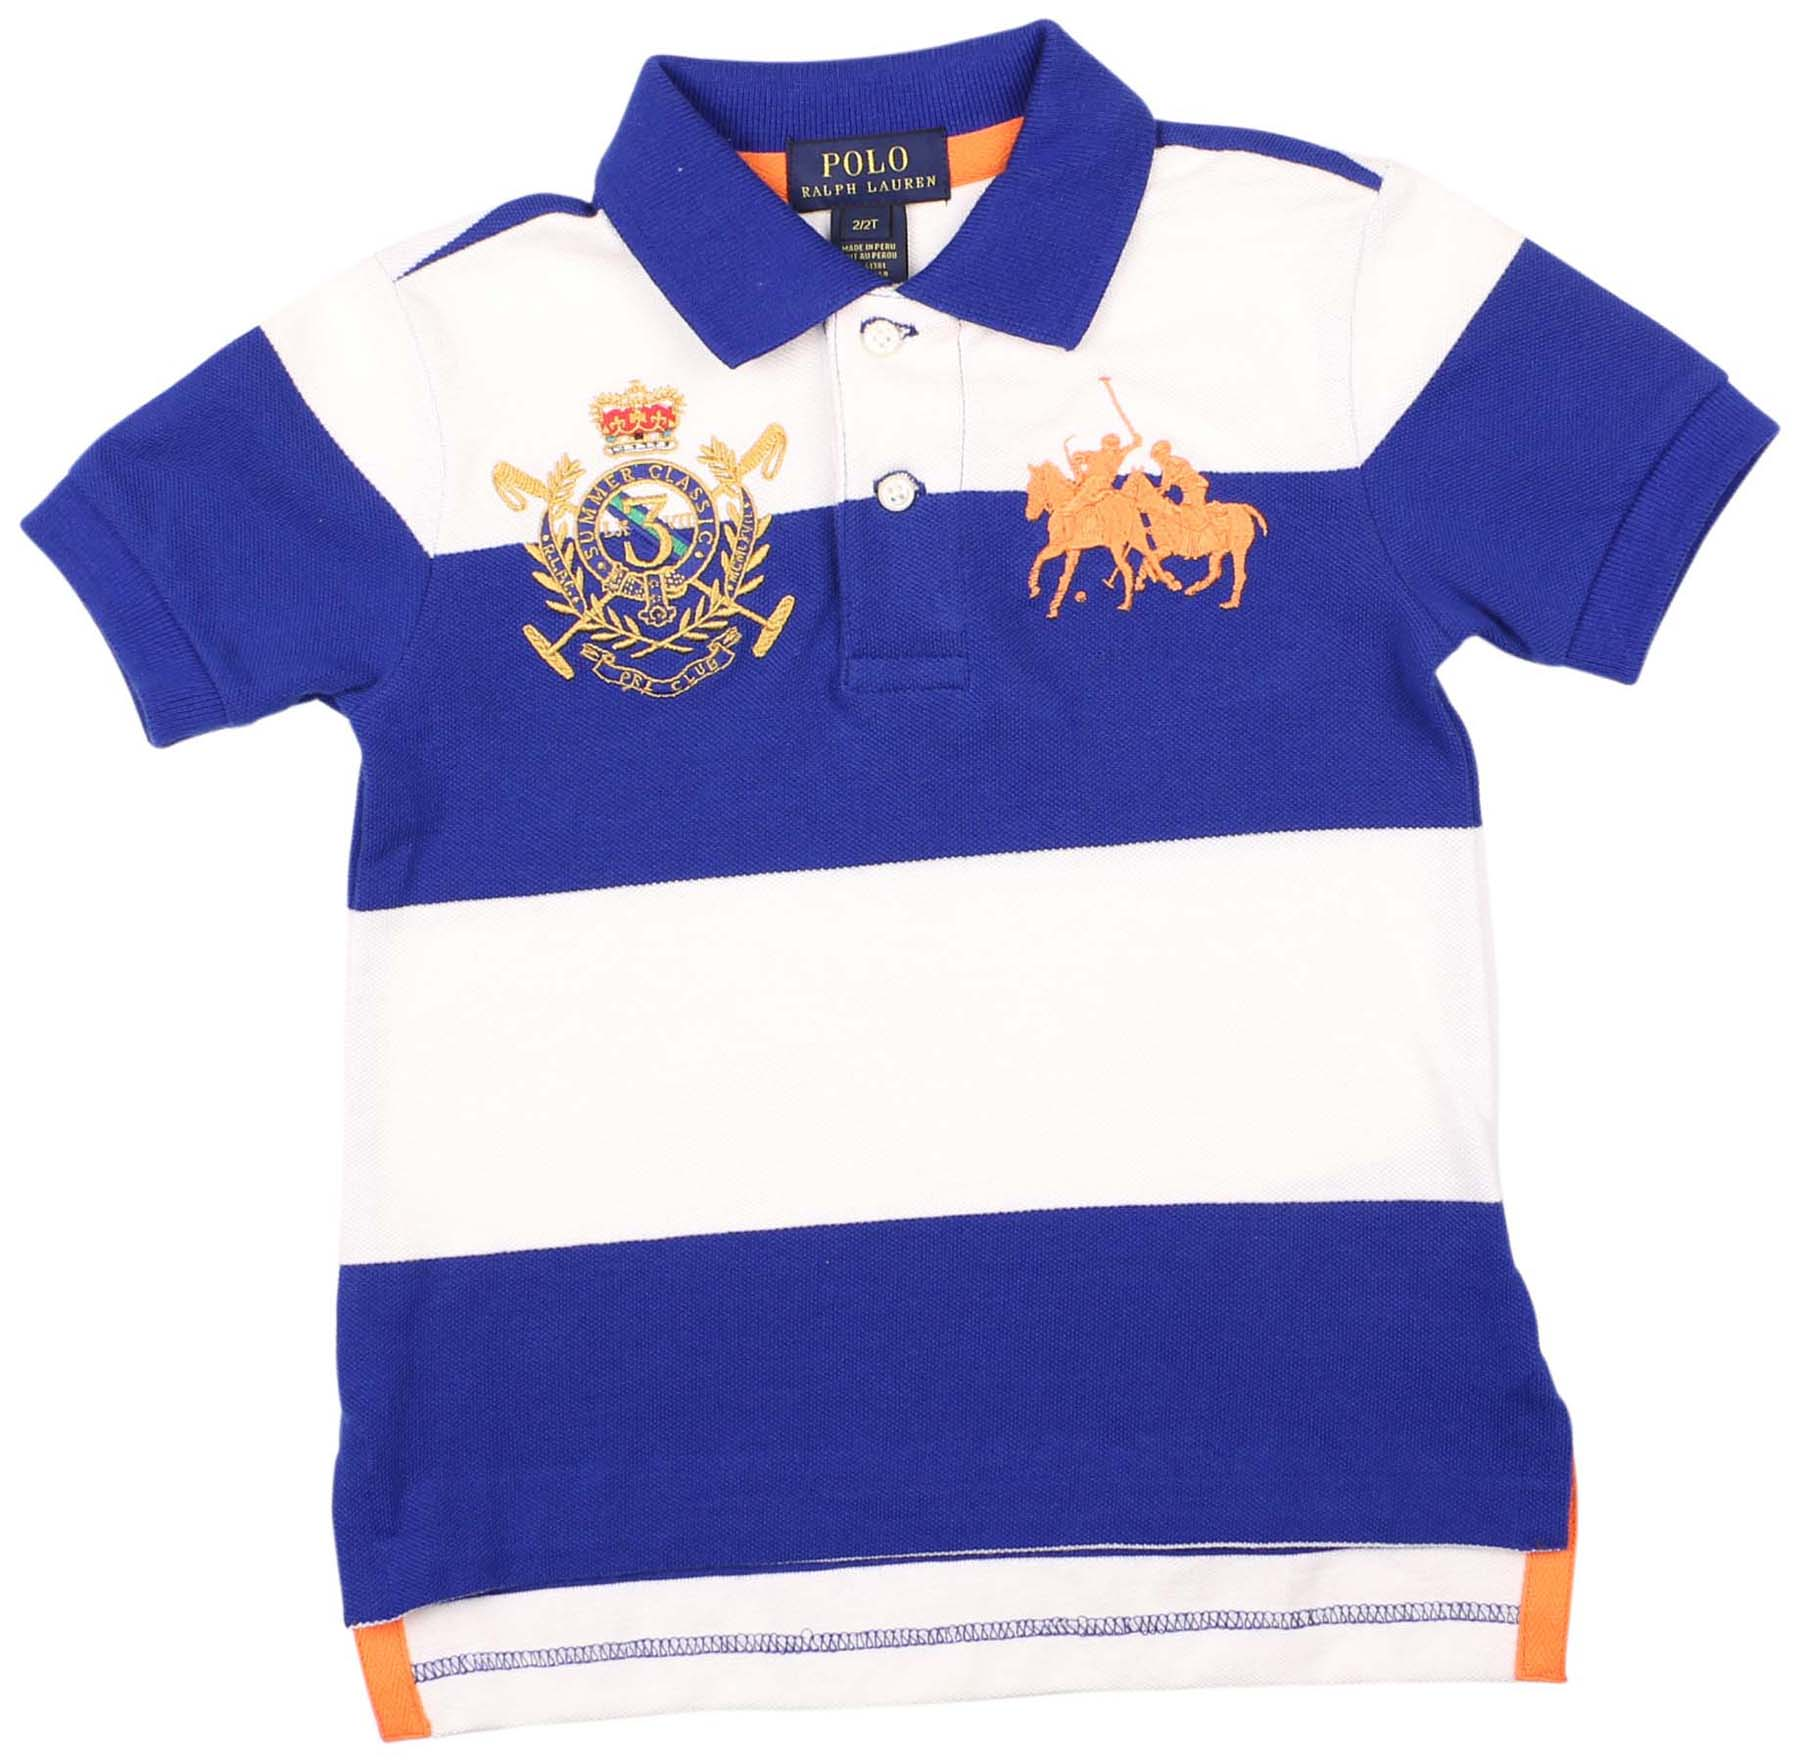 Polo Ralph Lauren Little Boys' (5-7) Dual Match Mesh Shirt-Sapphire Star